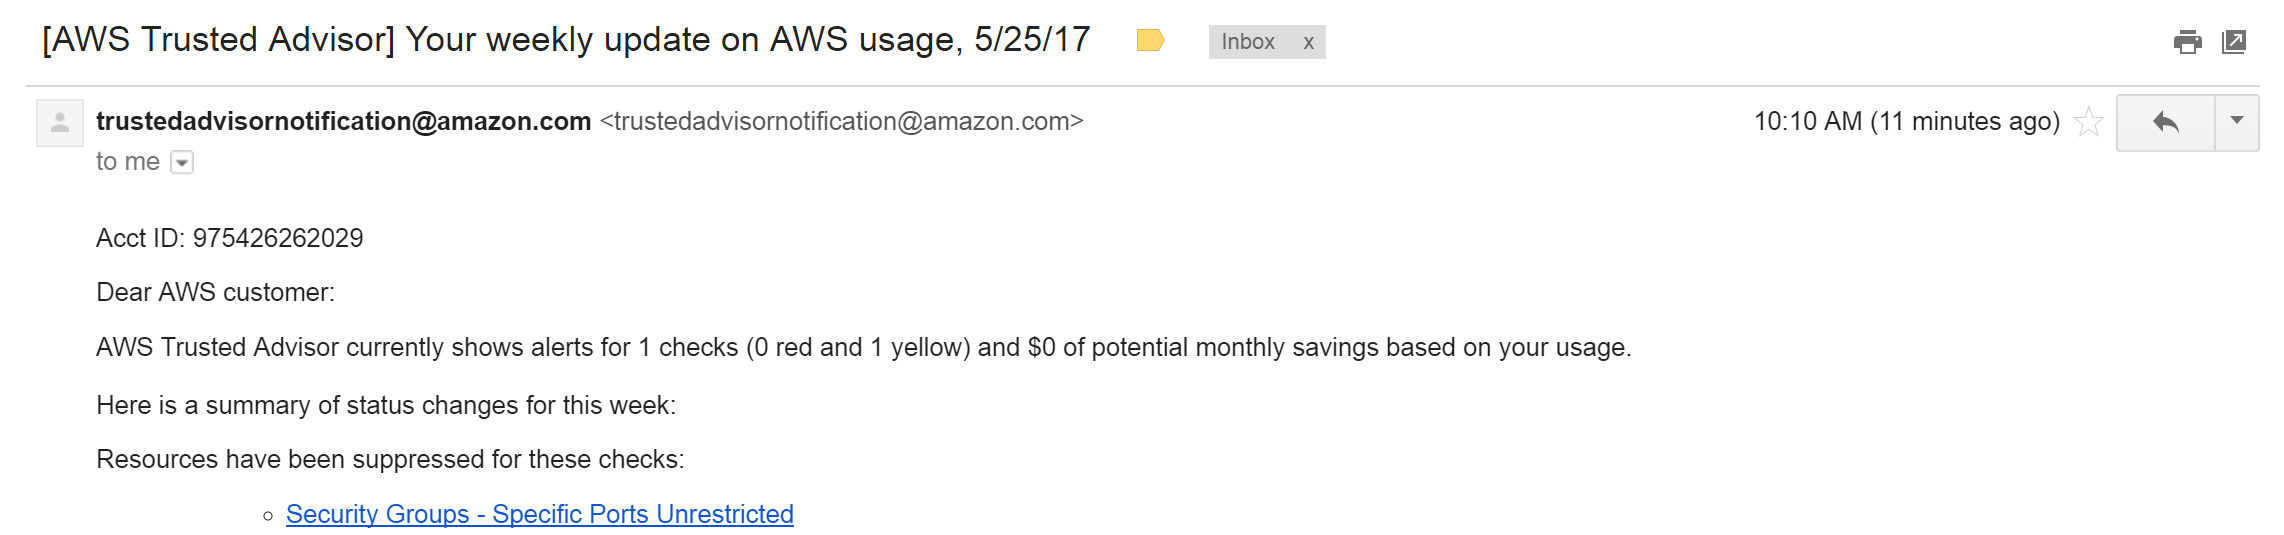 AWS Trusted Advisor email